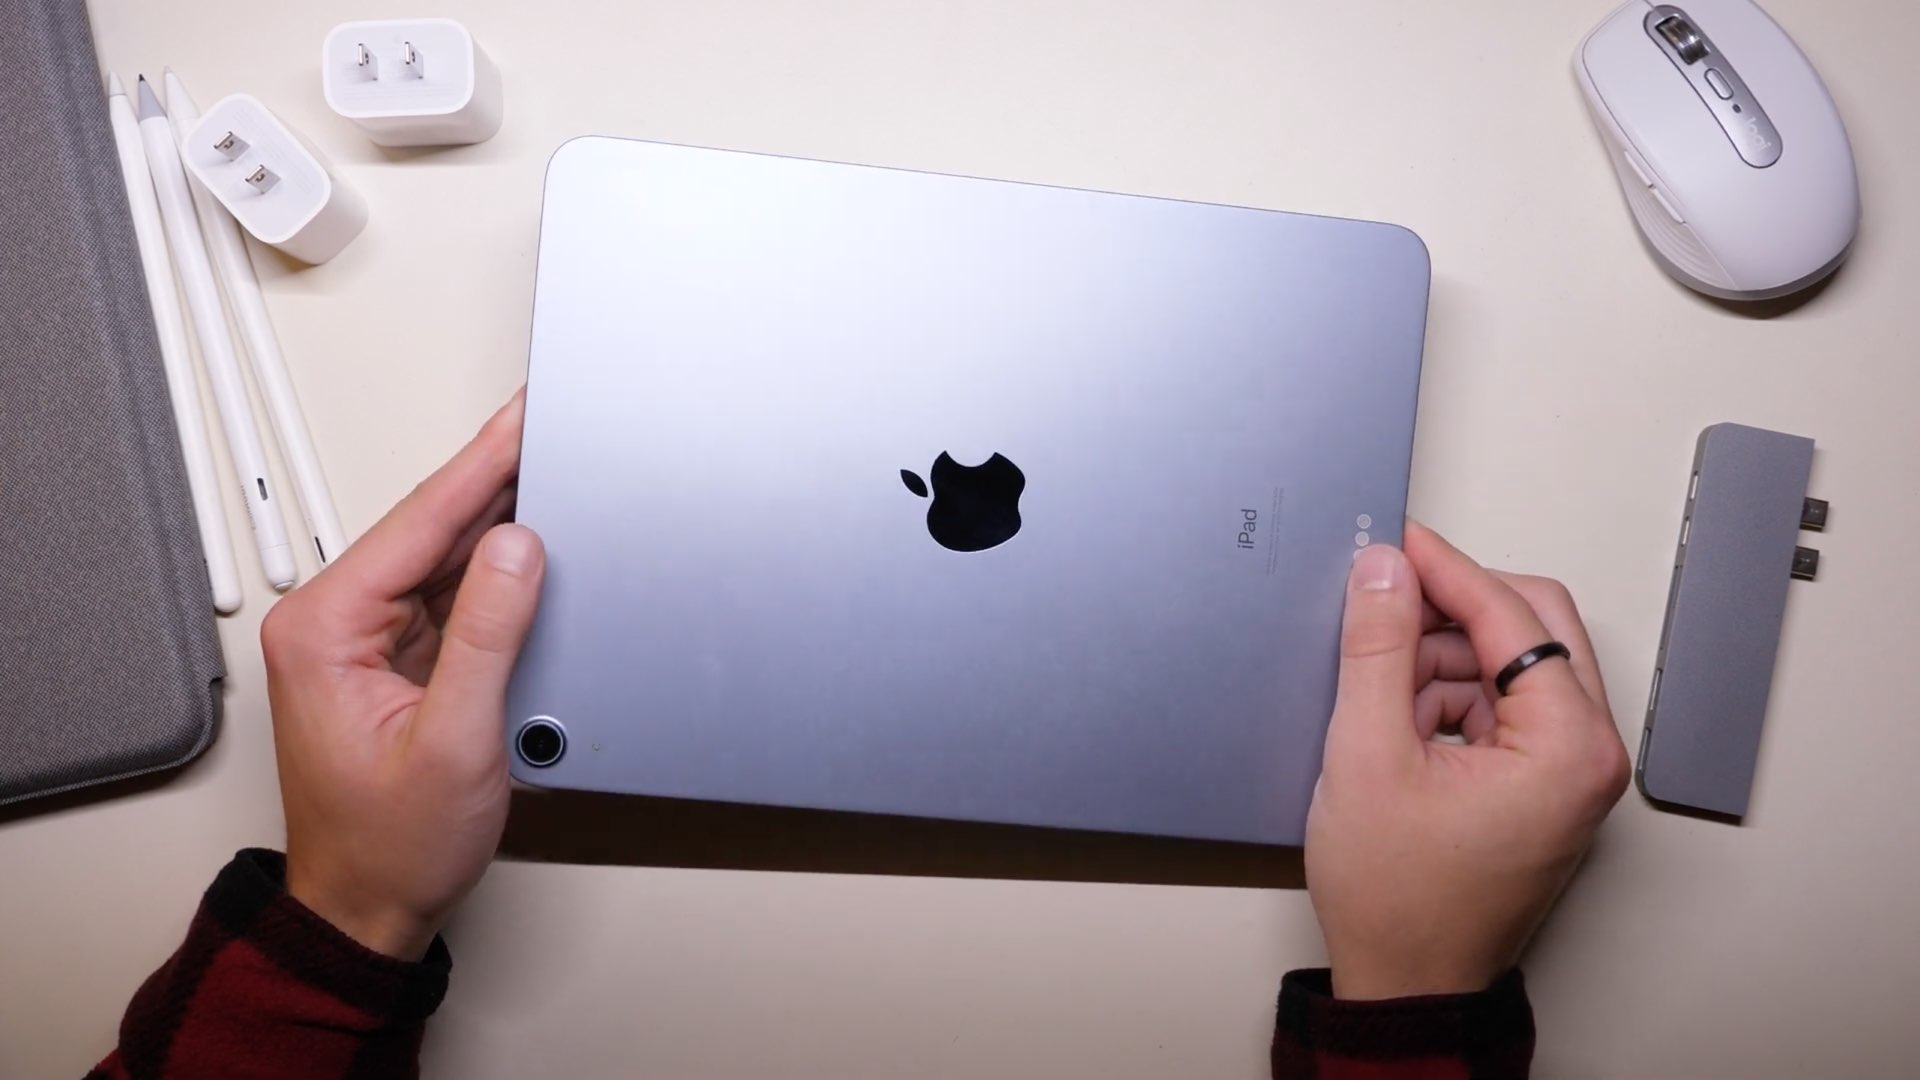 An image showing the aluminum back of iPad Pro held in hands